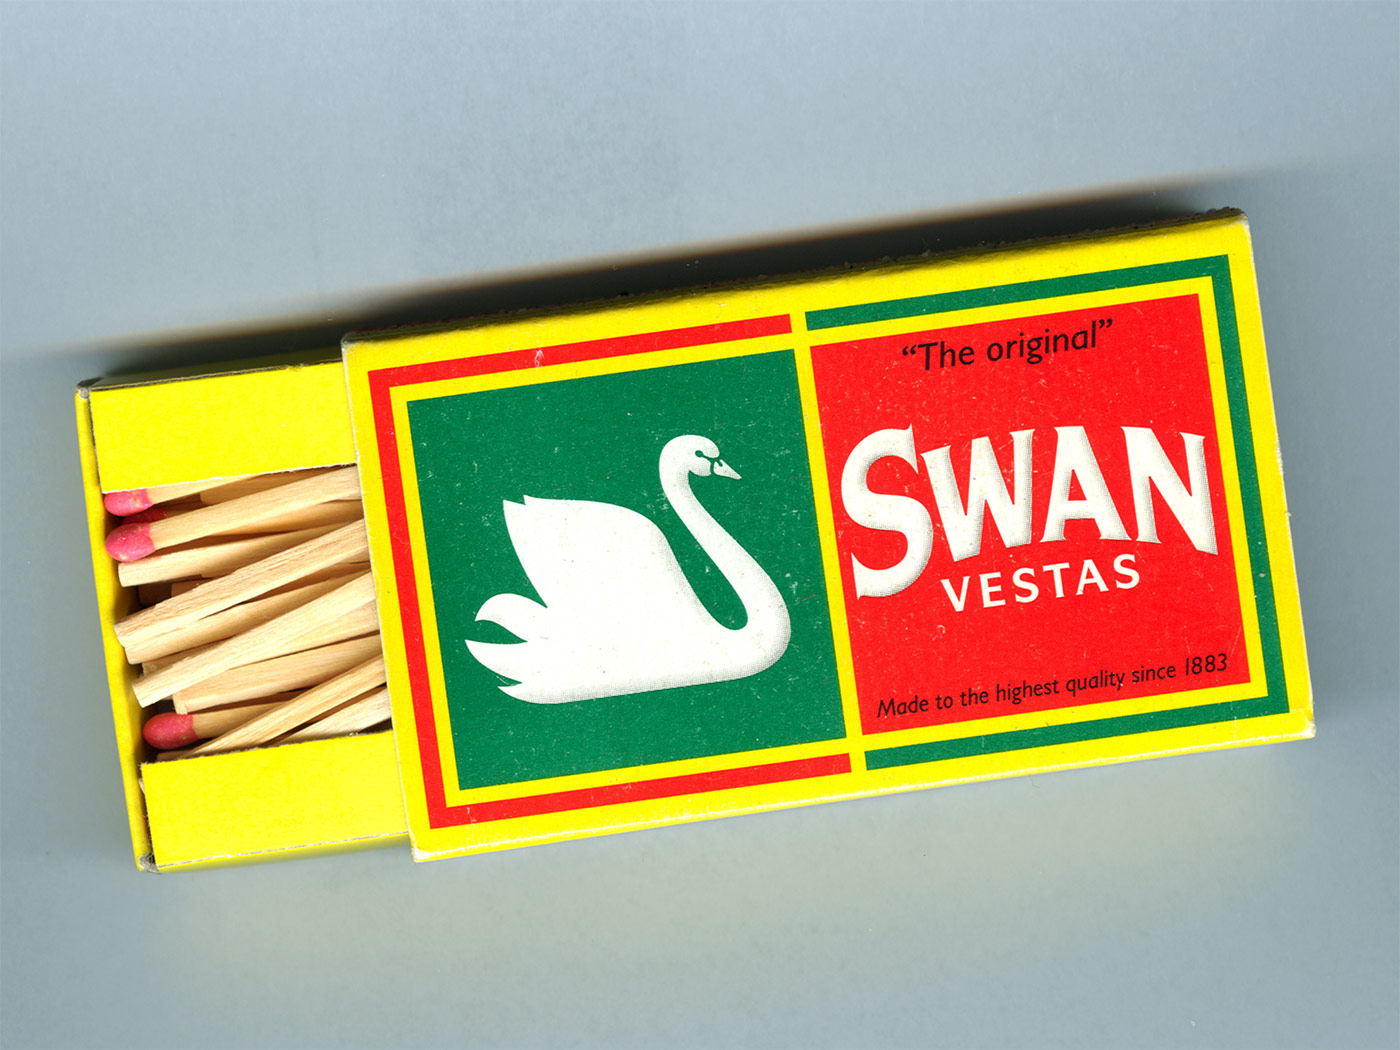 Swan Vestas matchbox packaging design